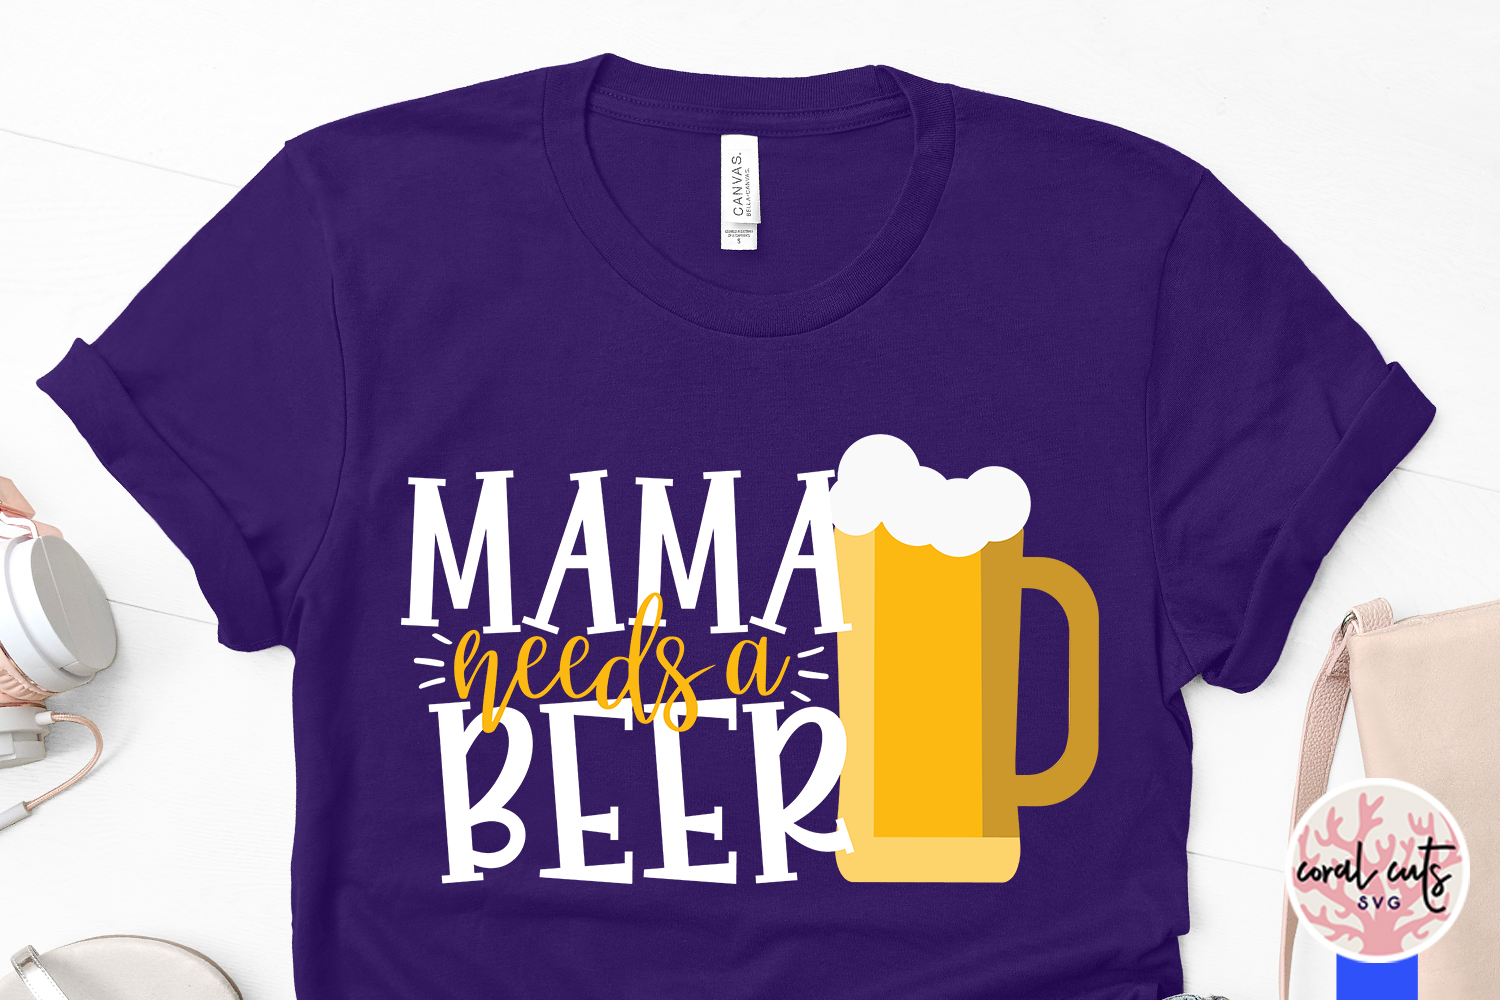 Mama needs a beer - Mother SVG EPS DXF PNG Cutting File example image 3